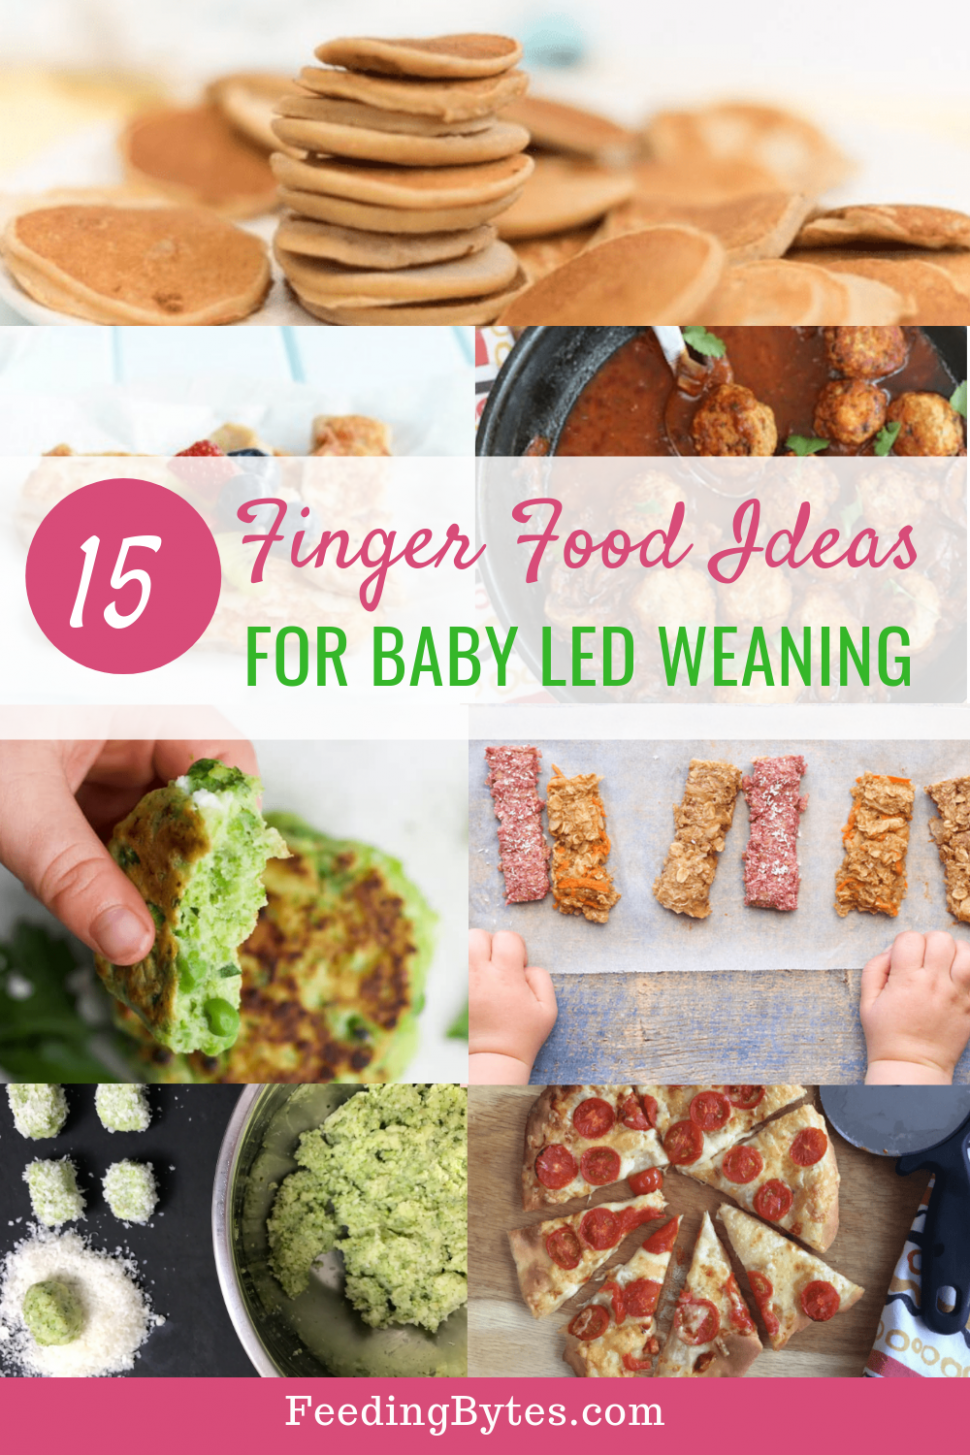 10 Nutritious Finger Food Recipes For Your Baby | Healthy ..